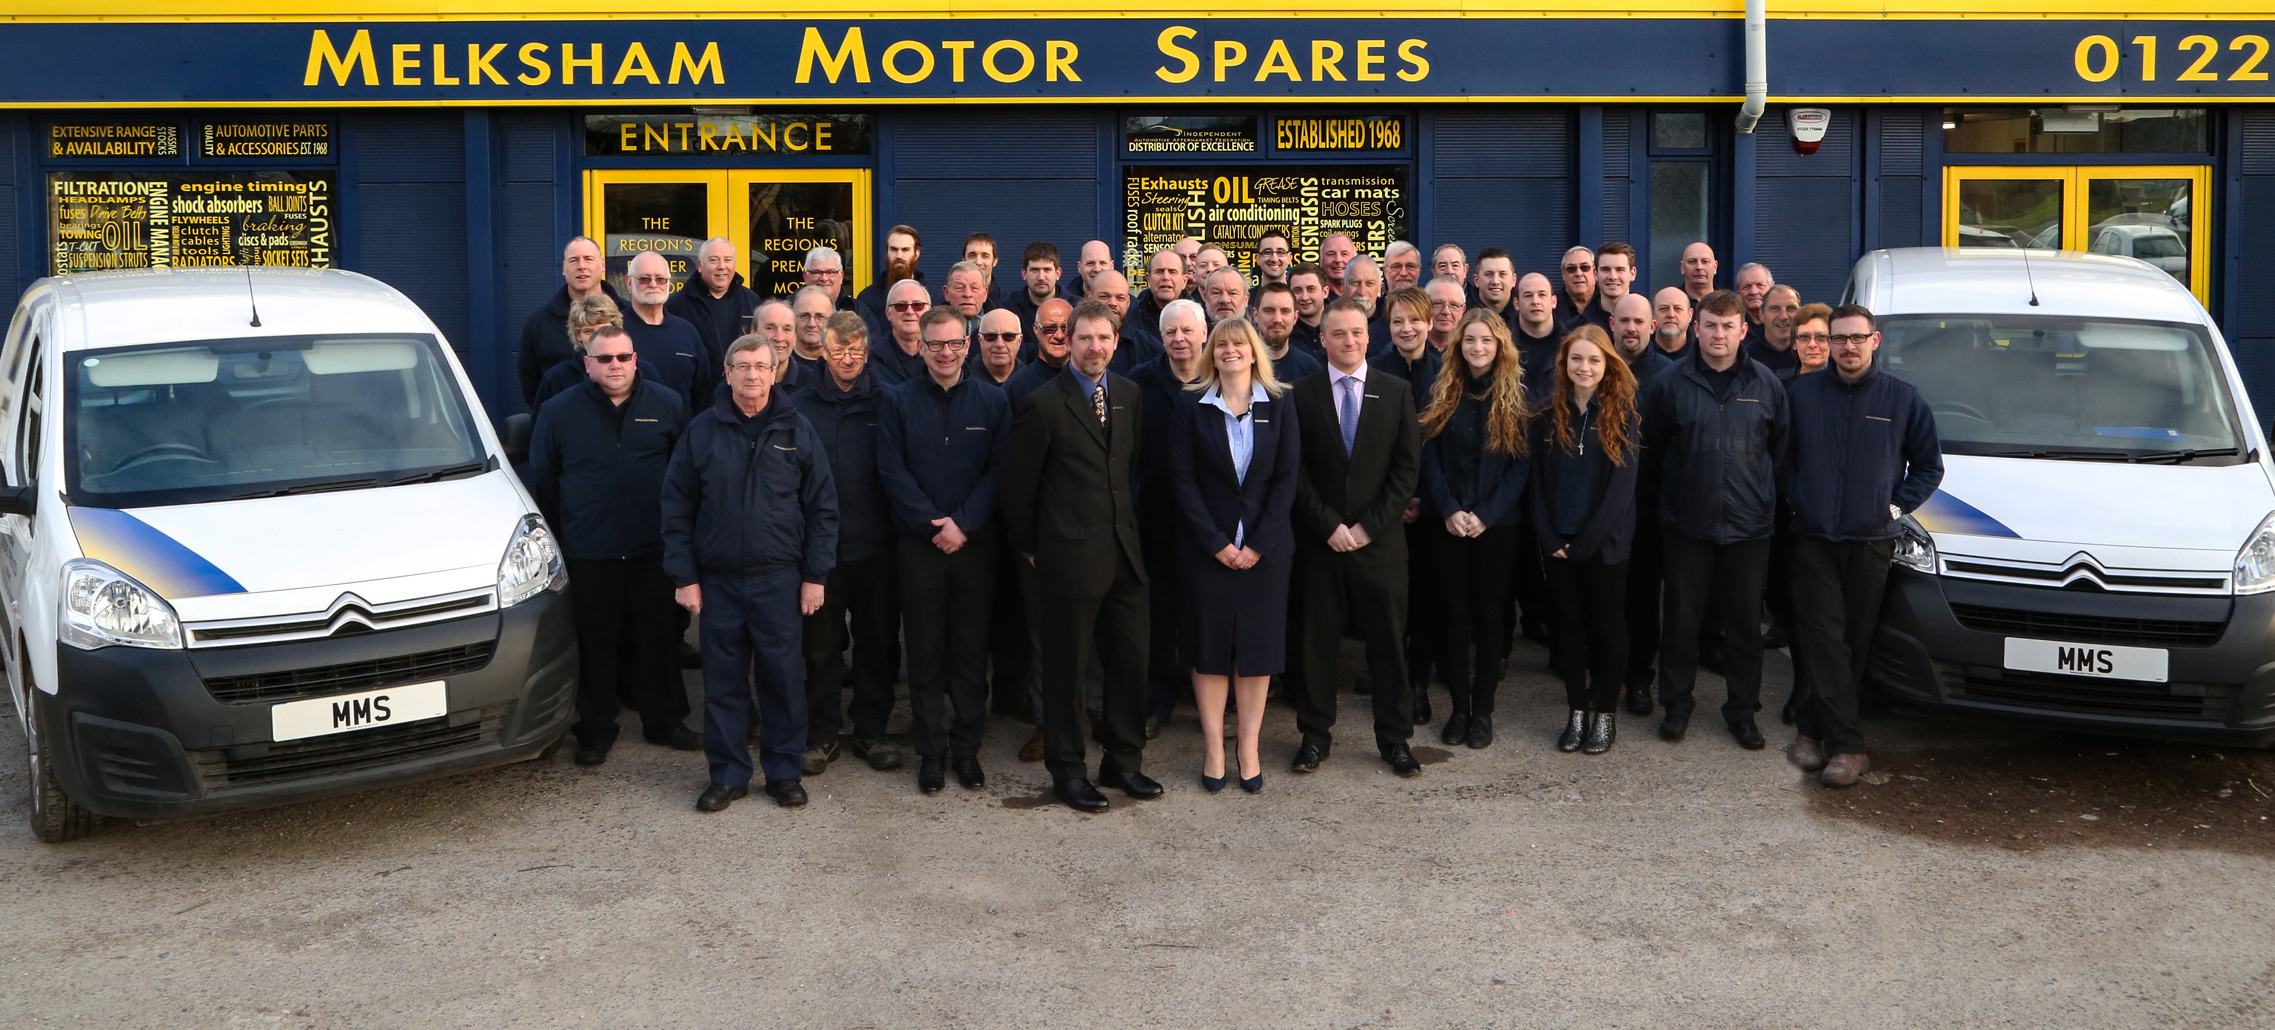 Staff at Melksham Motor Spares need your votes to win industry award